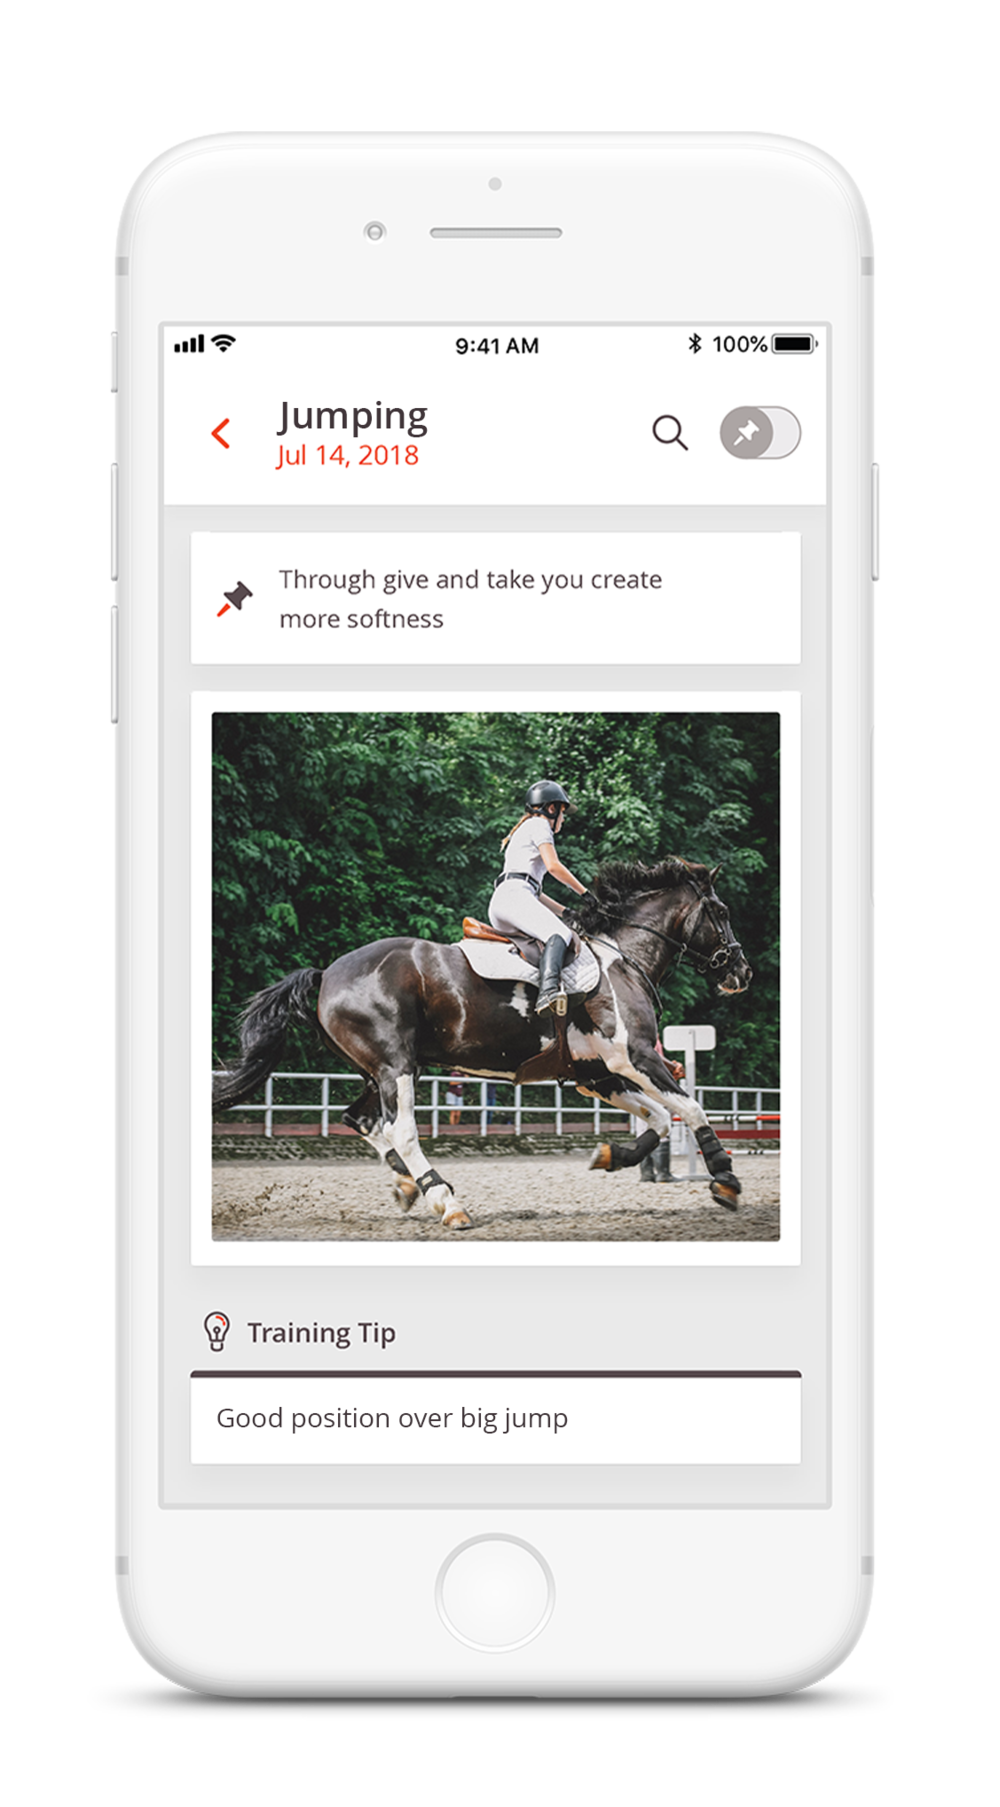 Photo & Video Storage - Say goodbye to the days of nagging your coach to send that photo, or having to dig through your photo library to find the last video your coach took during a lesson. Store your photos and videos alongside the key points of feedback from that lesson to help you review, recreate, improve and master your skills.